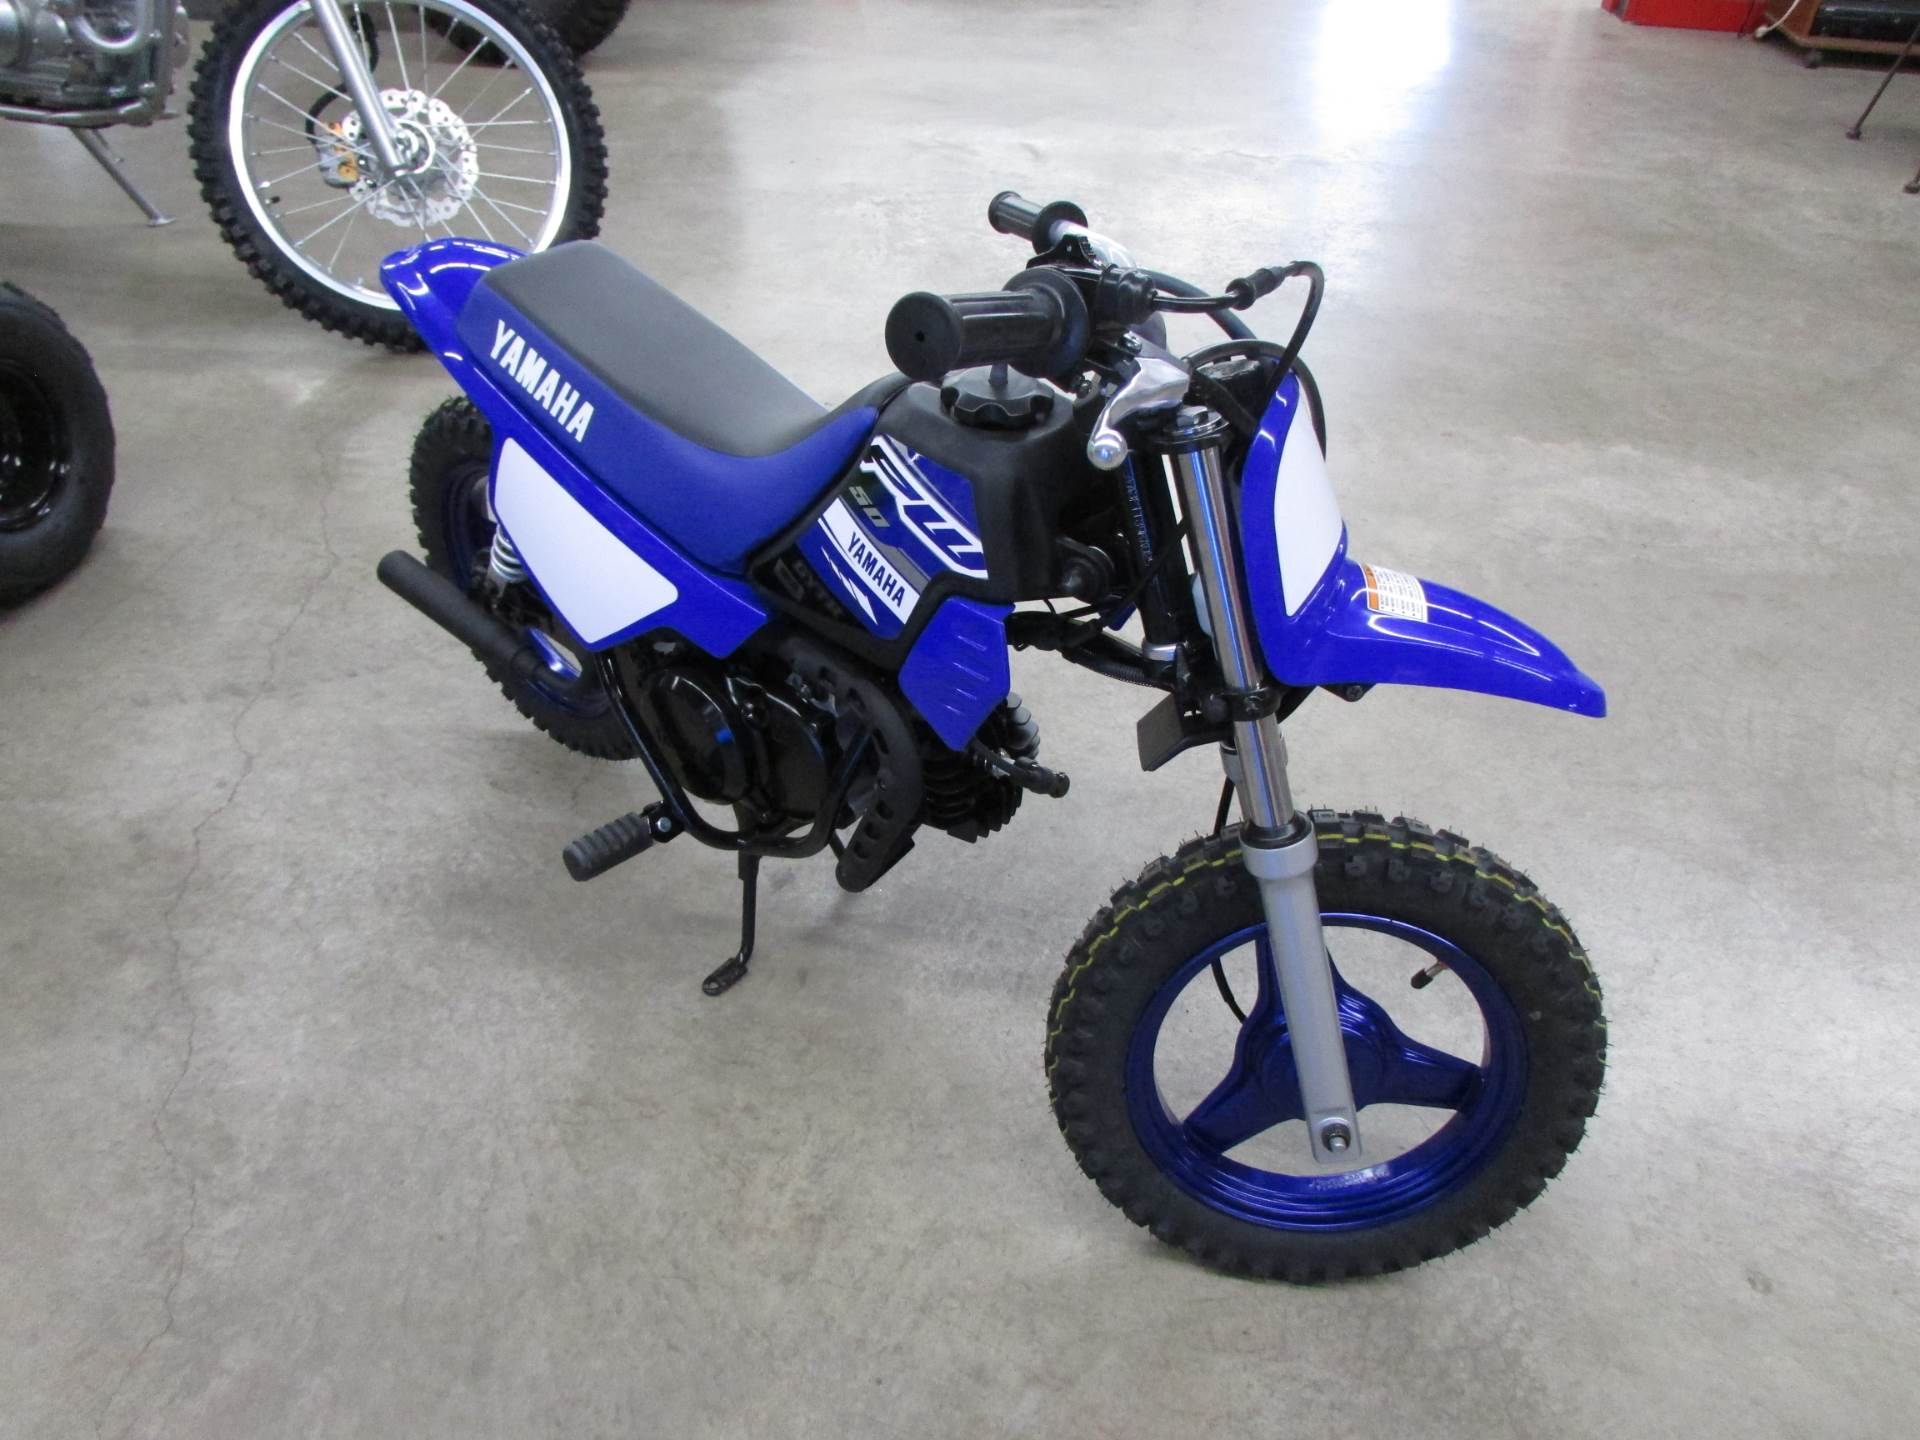 2019 Yamaha PW50 for sale 7968